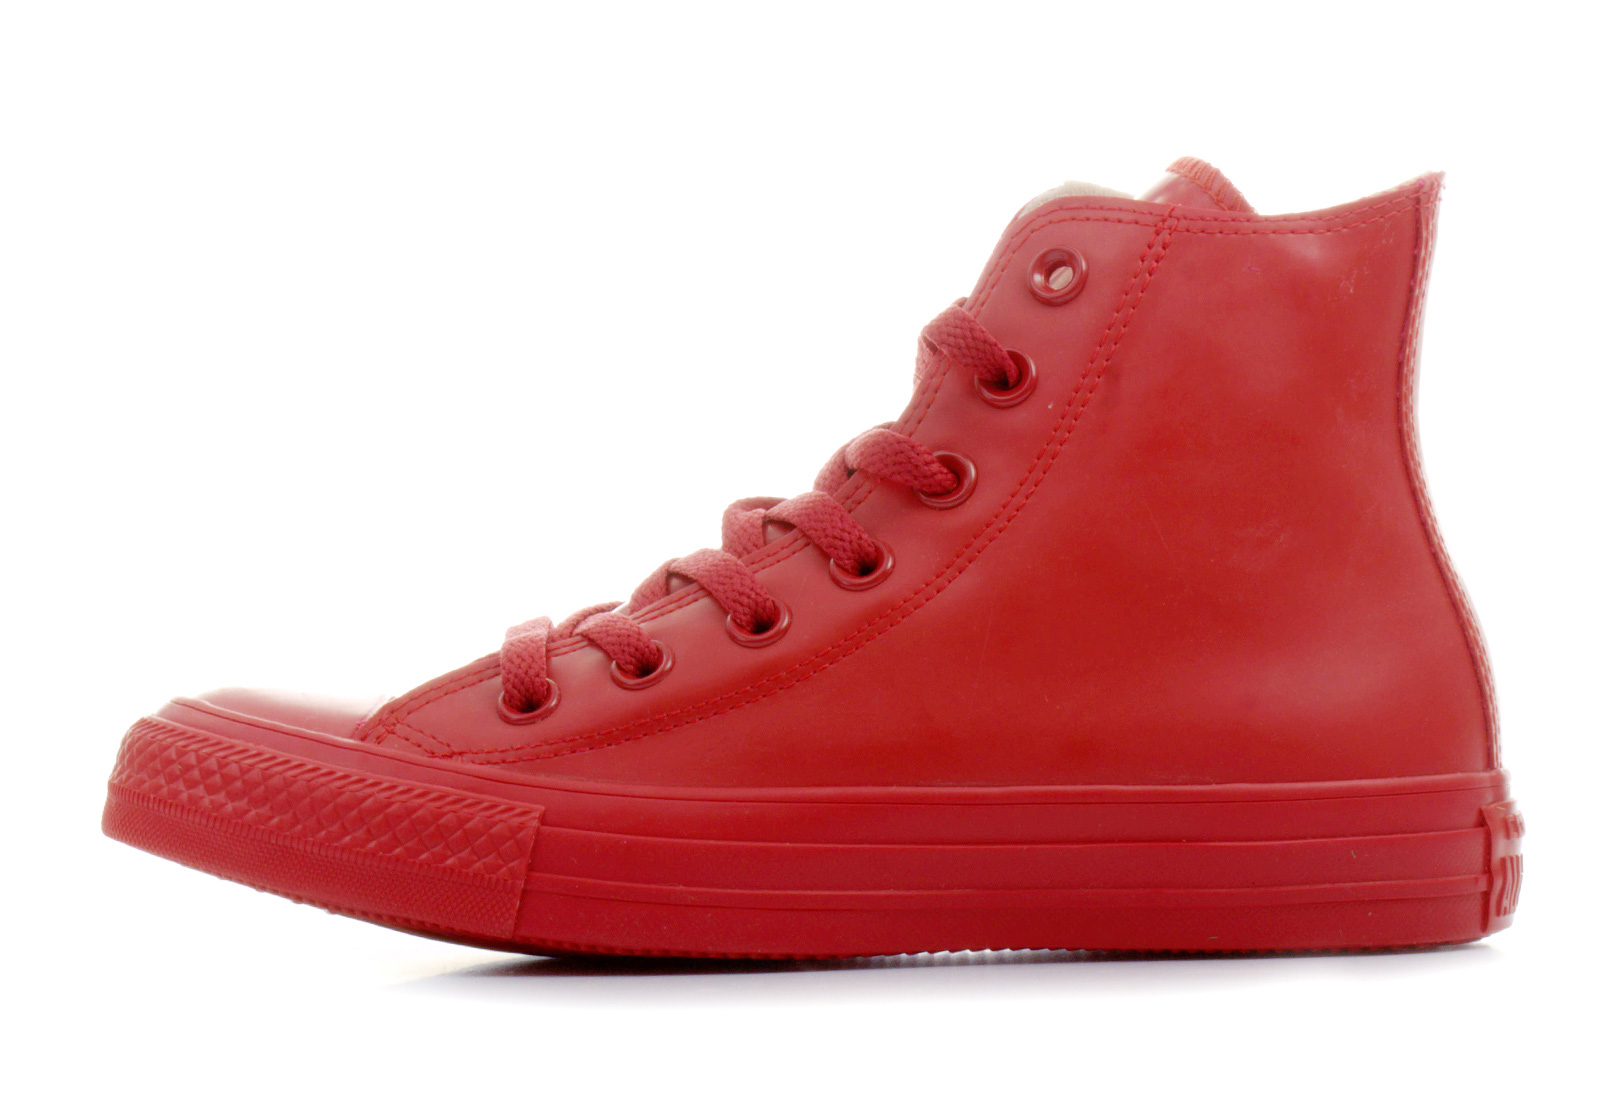 Converse Tornacipő - Chuck Taylor All Star Rubber - 144744C - Office ... 5bc0c72a5a